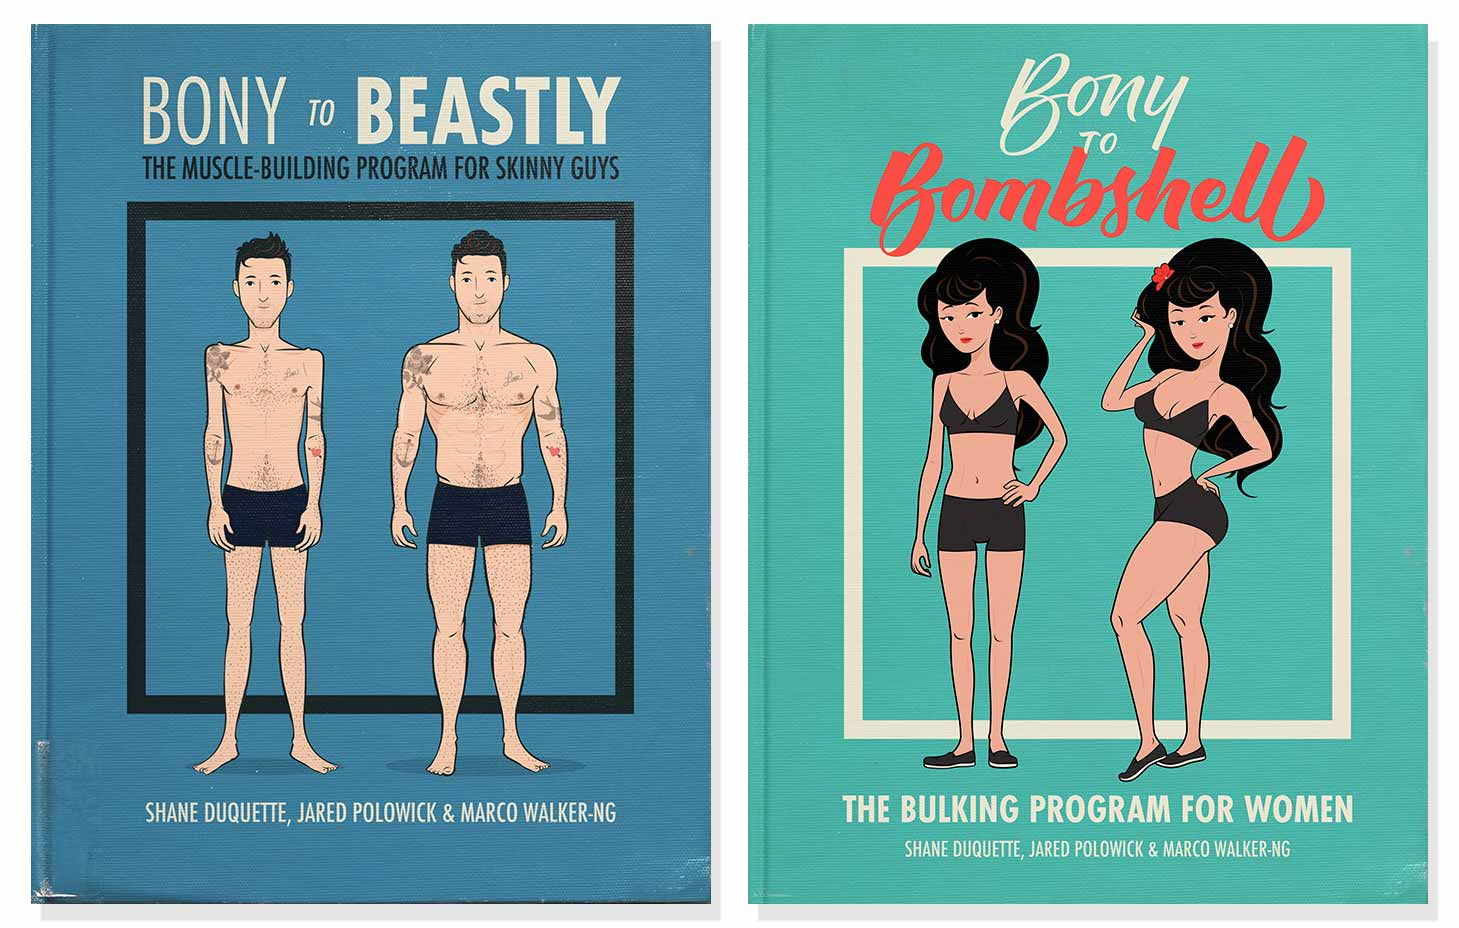 Bony to Beastly & Bombshell Bulking Programs for Skinny Men and Women.